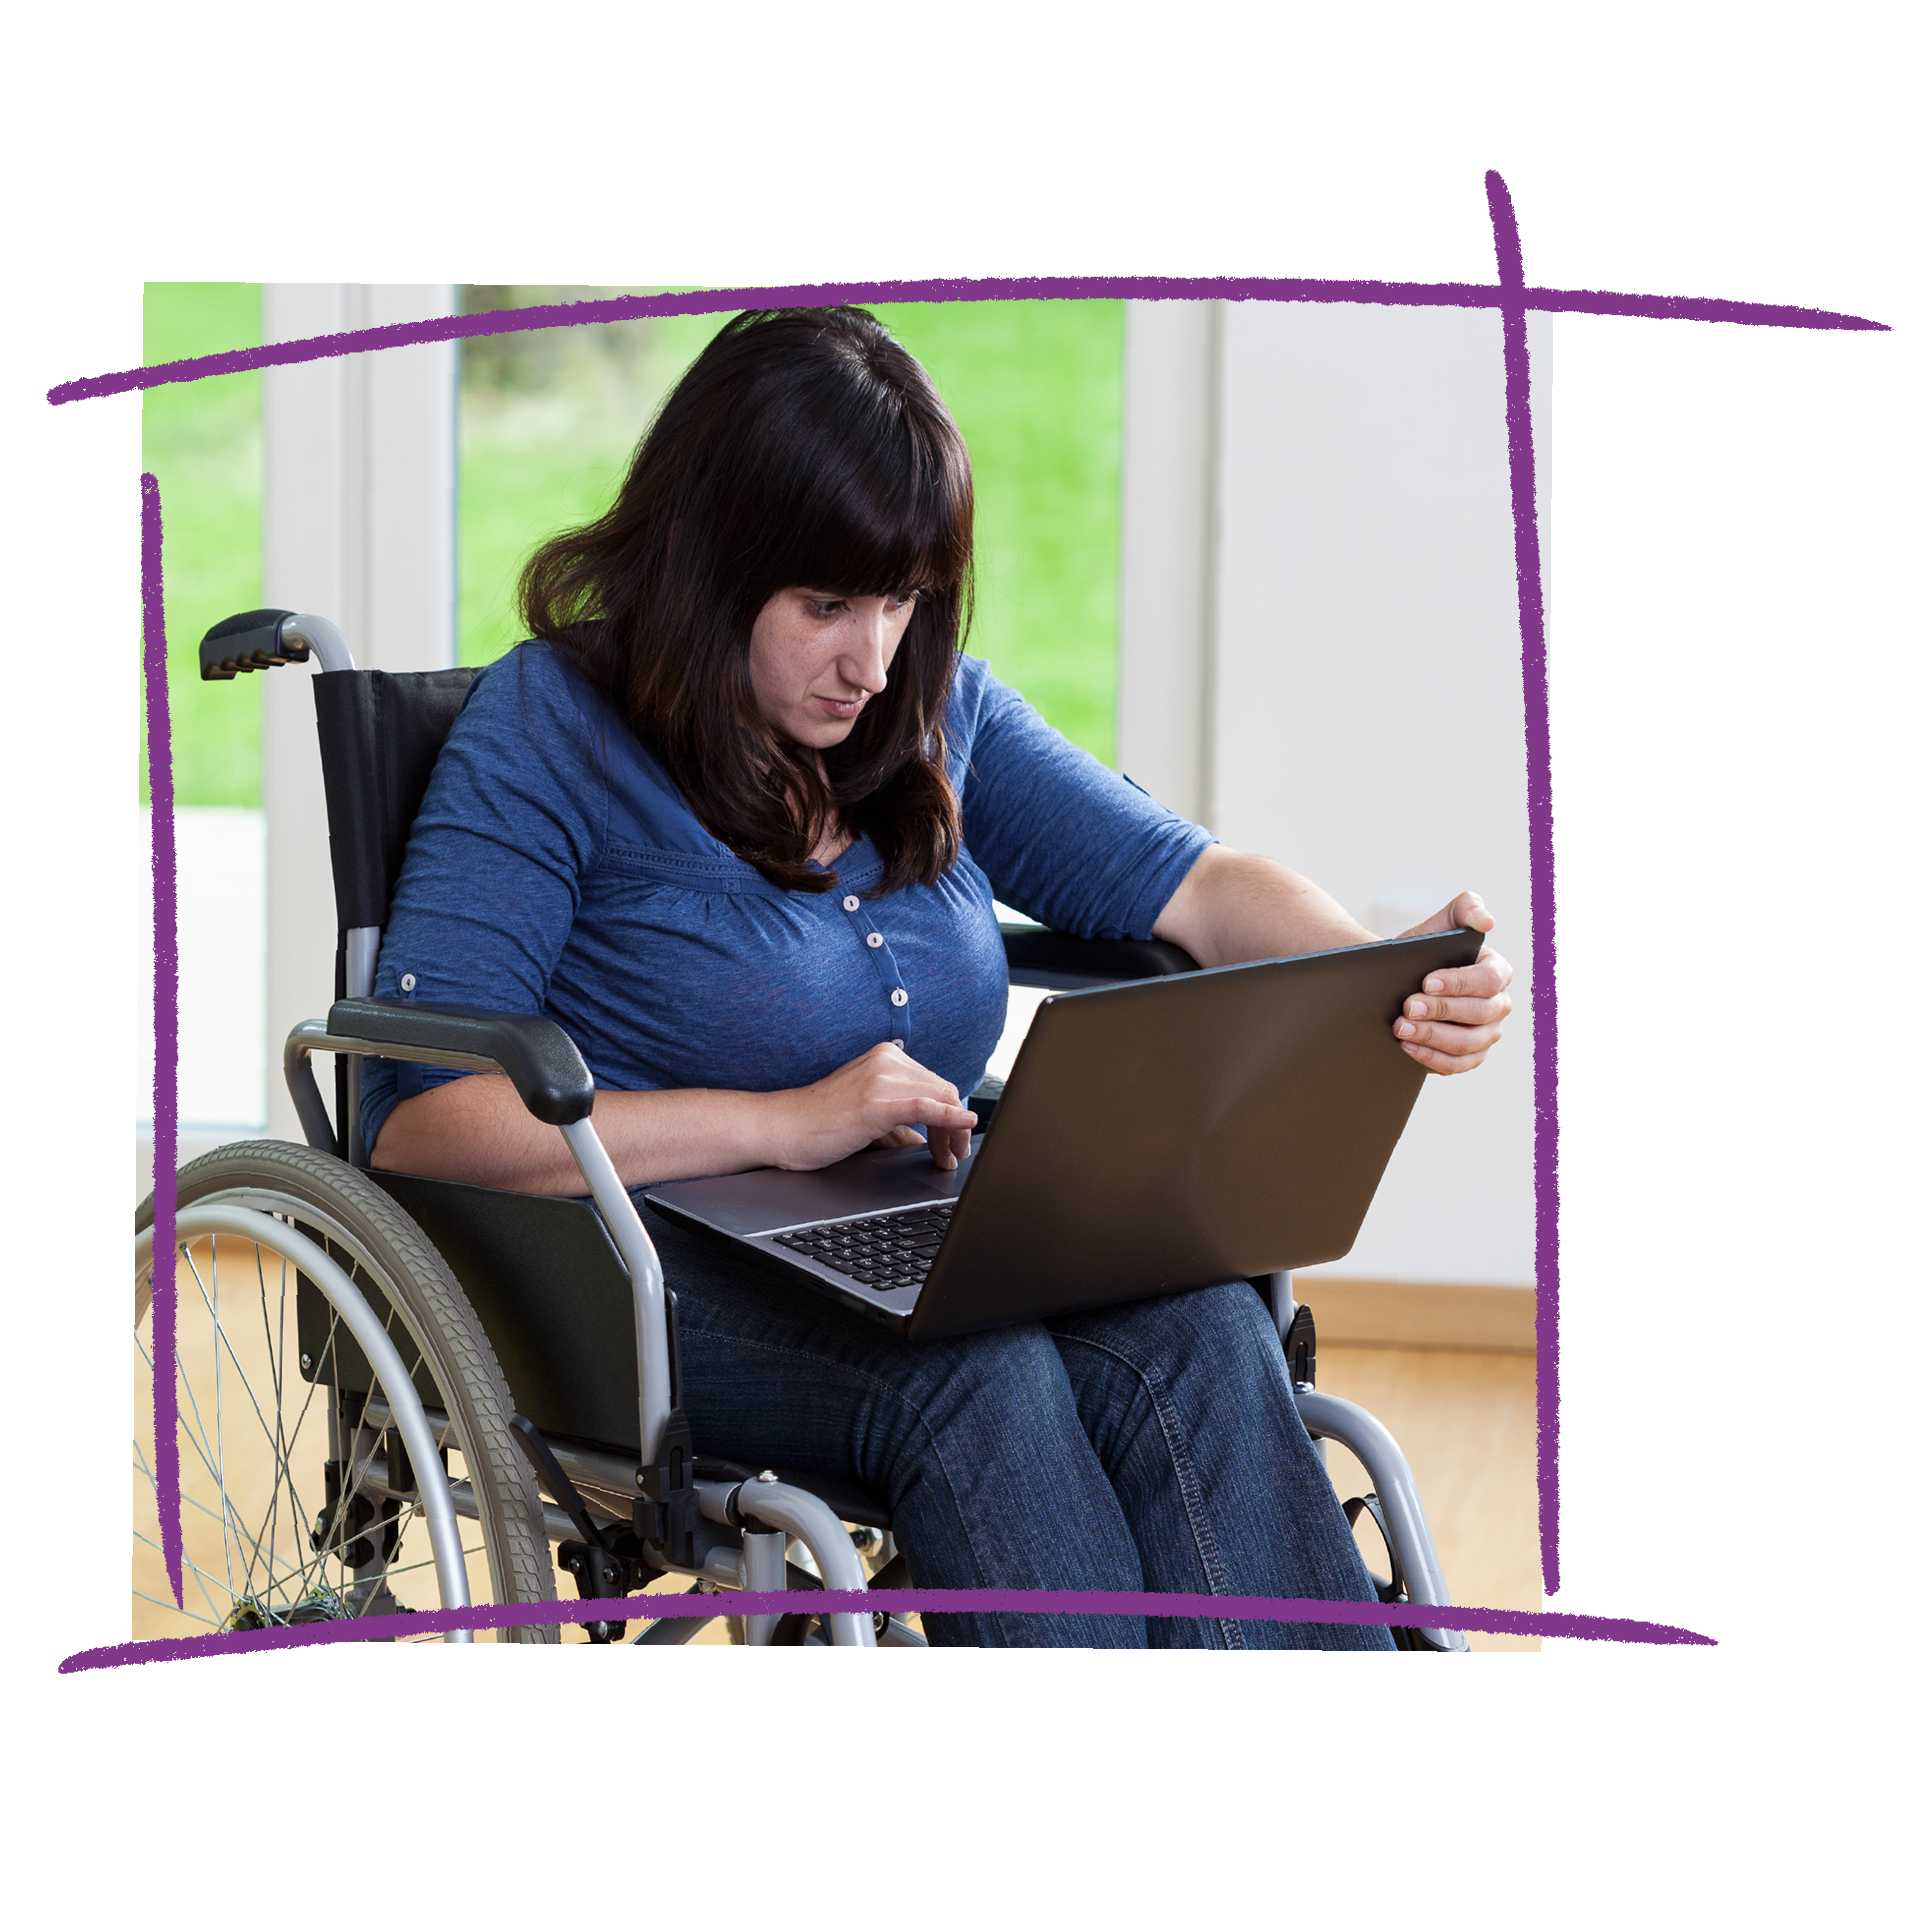 Photo of a woman in a wheelchair reading on a laptop.